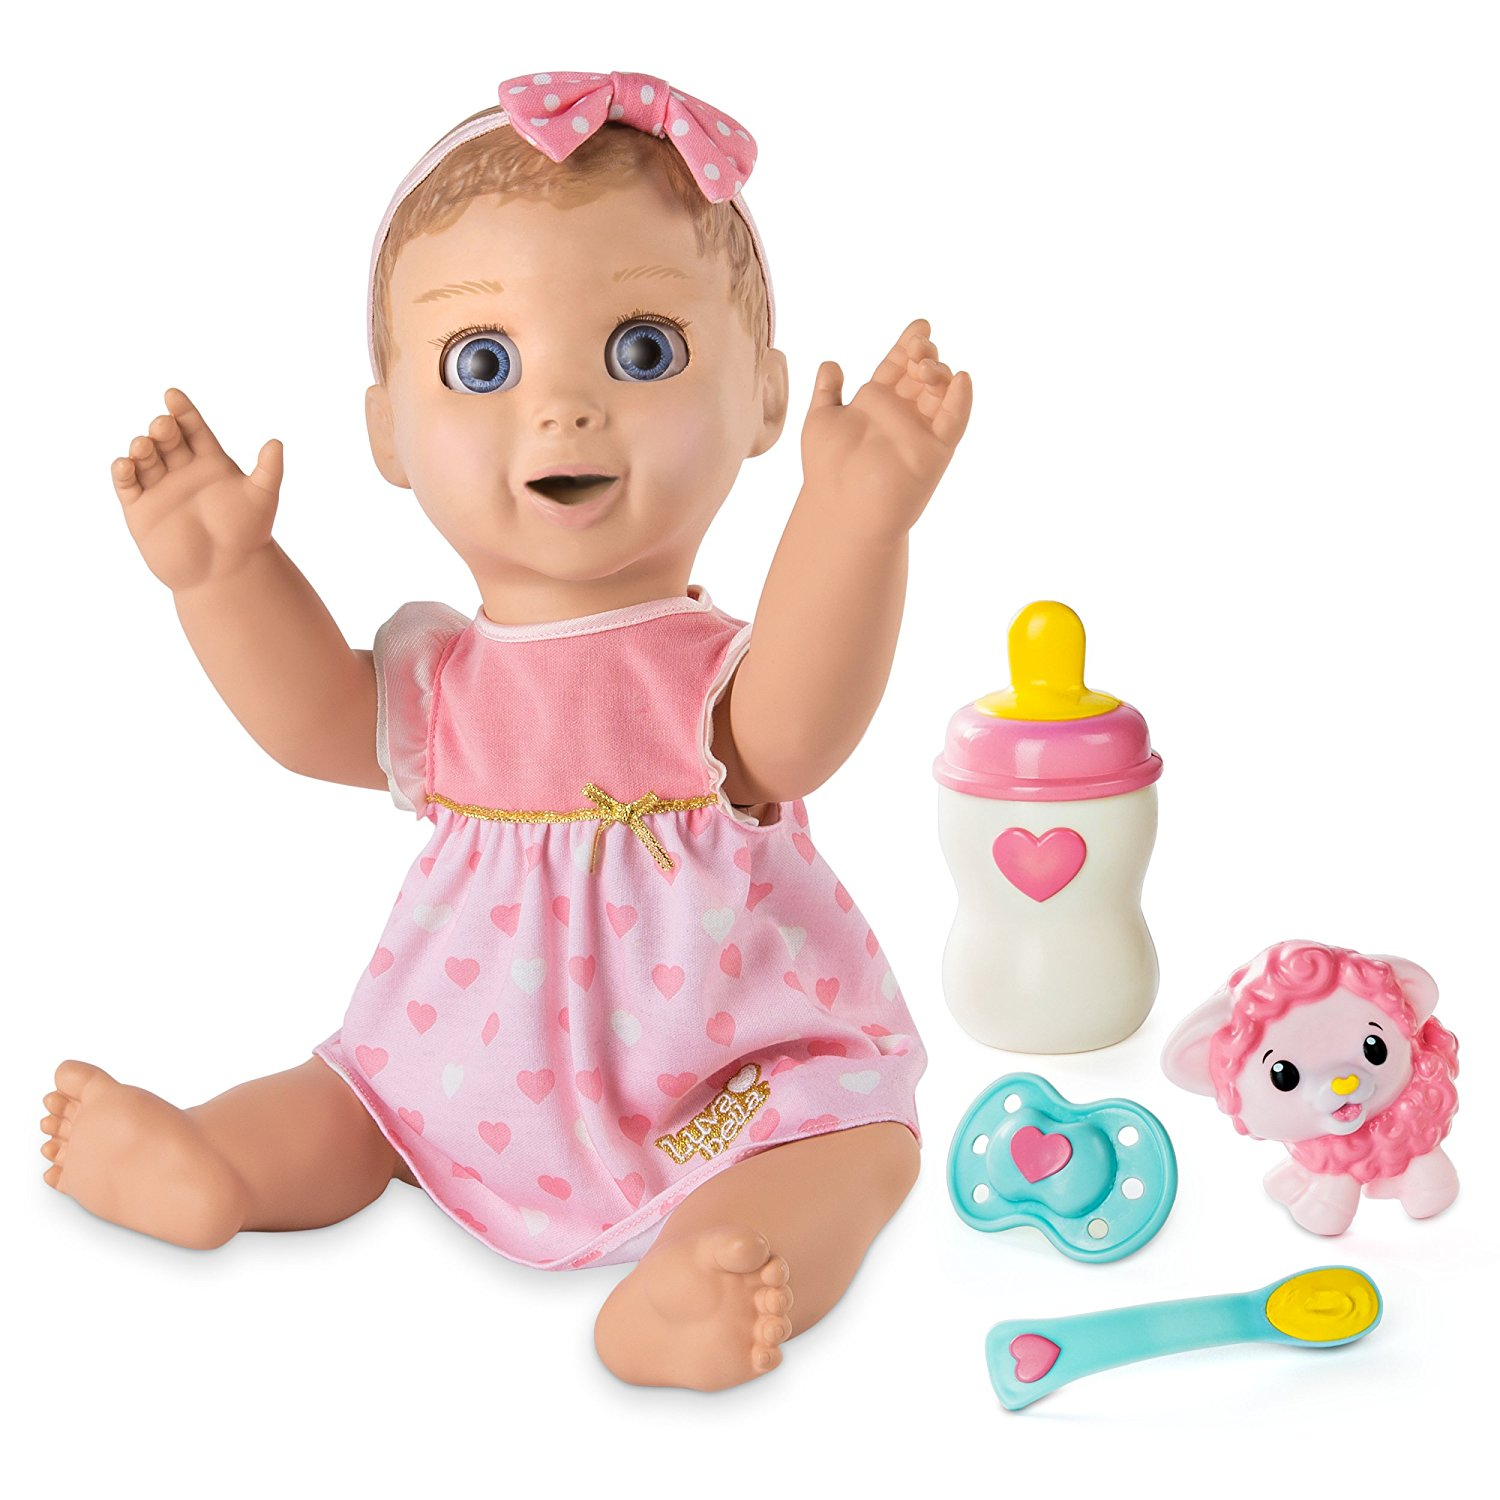 Luvabella Responsive Baby Doll Only 59 99 Shipped